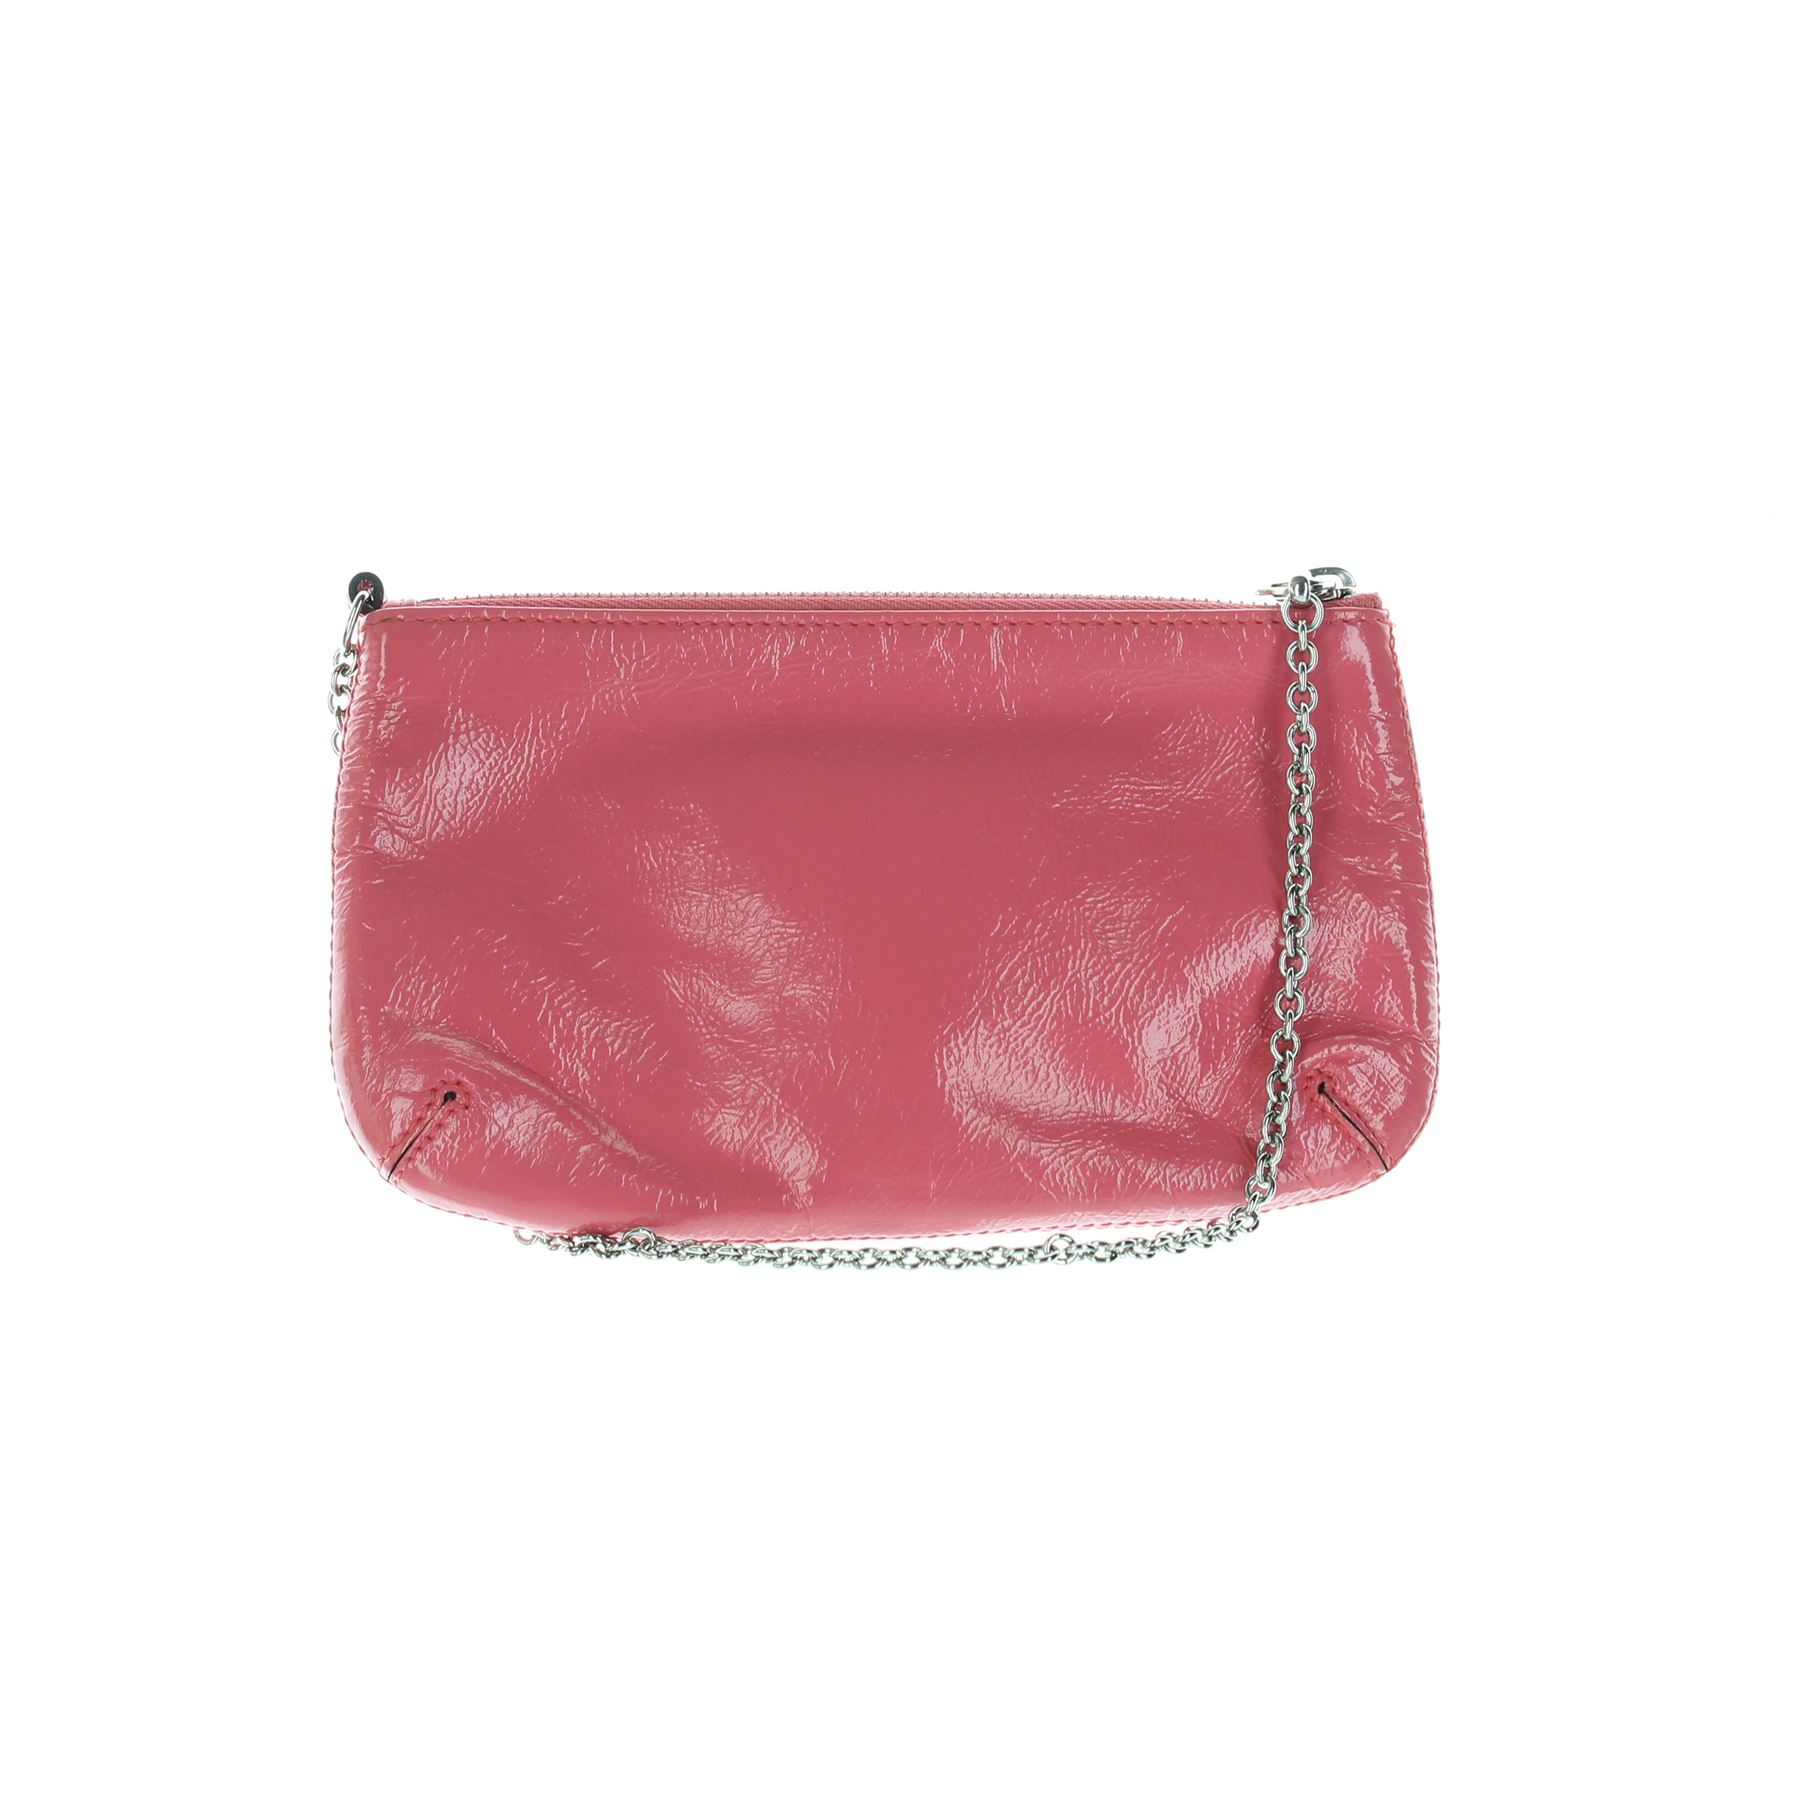 Details about MULBERRY Charlie Pink Patent Leather Clutch Bag 461ae3e958c85